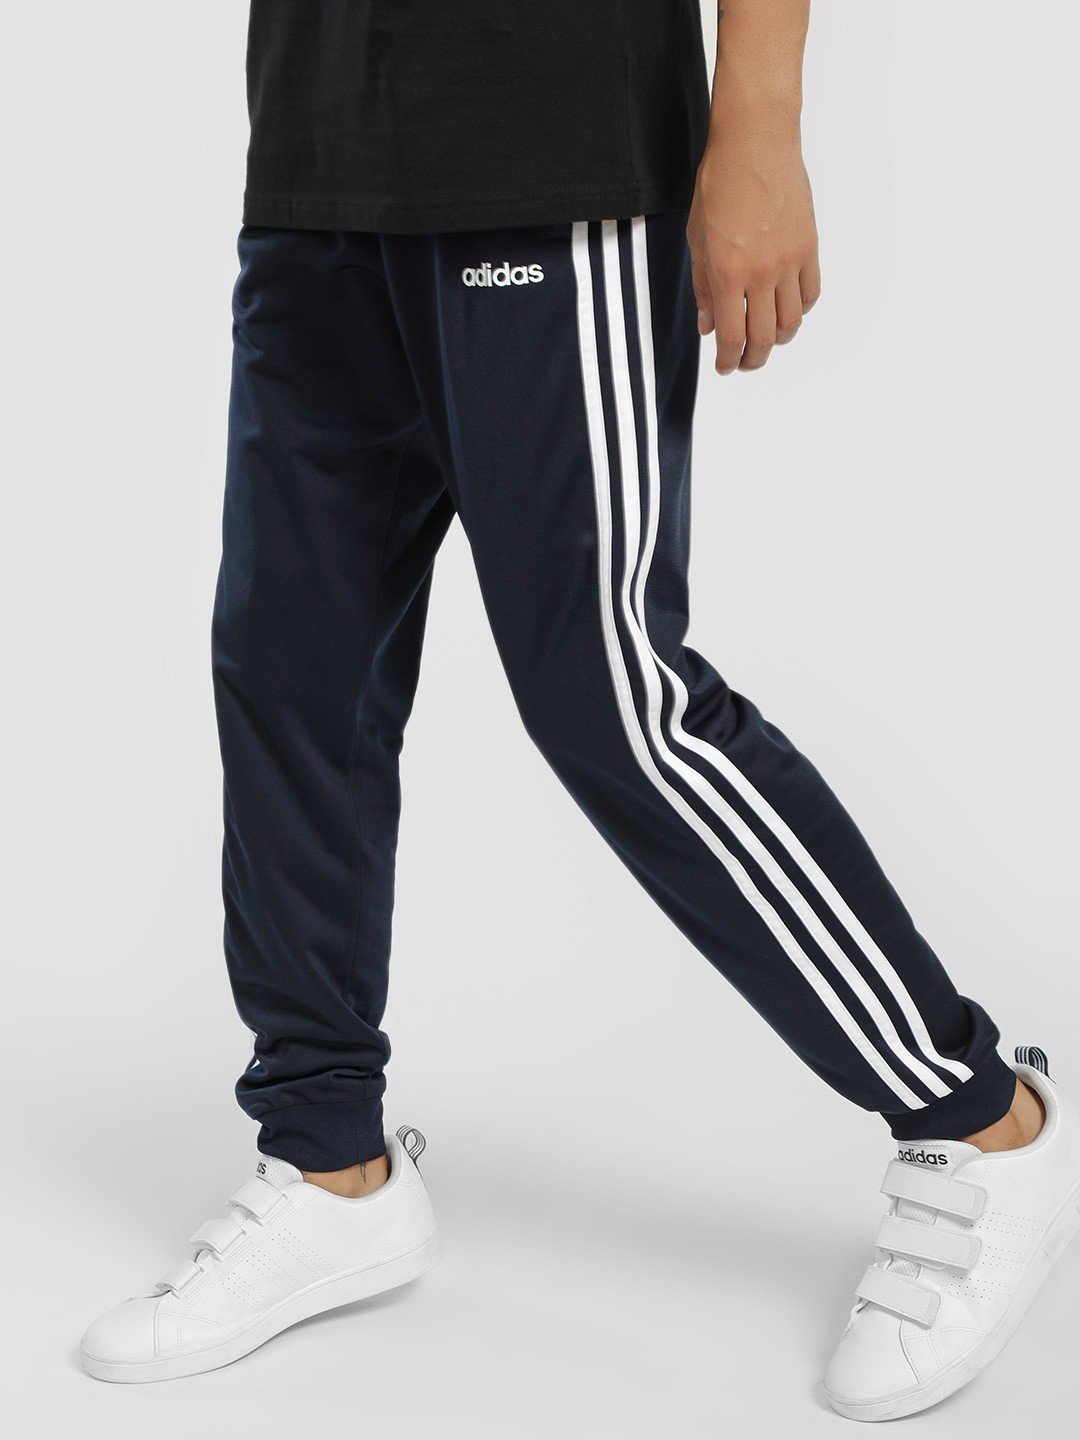 Buy Adidas Blue Essentials 3 Stripes Tricot Pants for Men